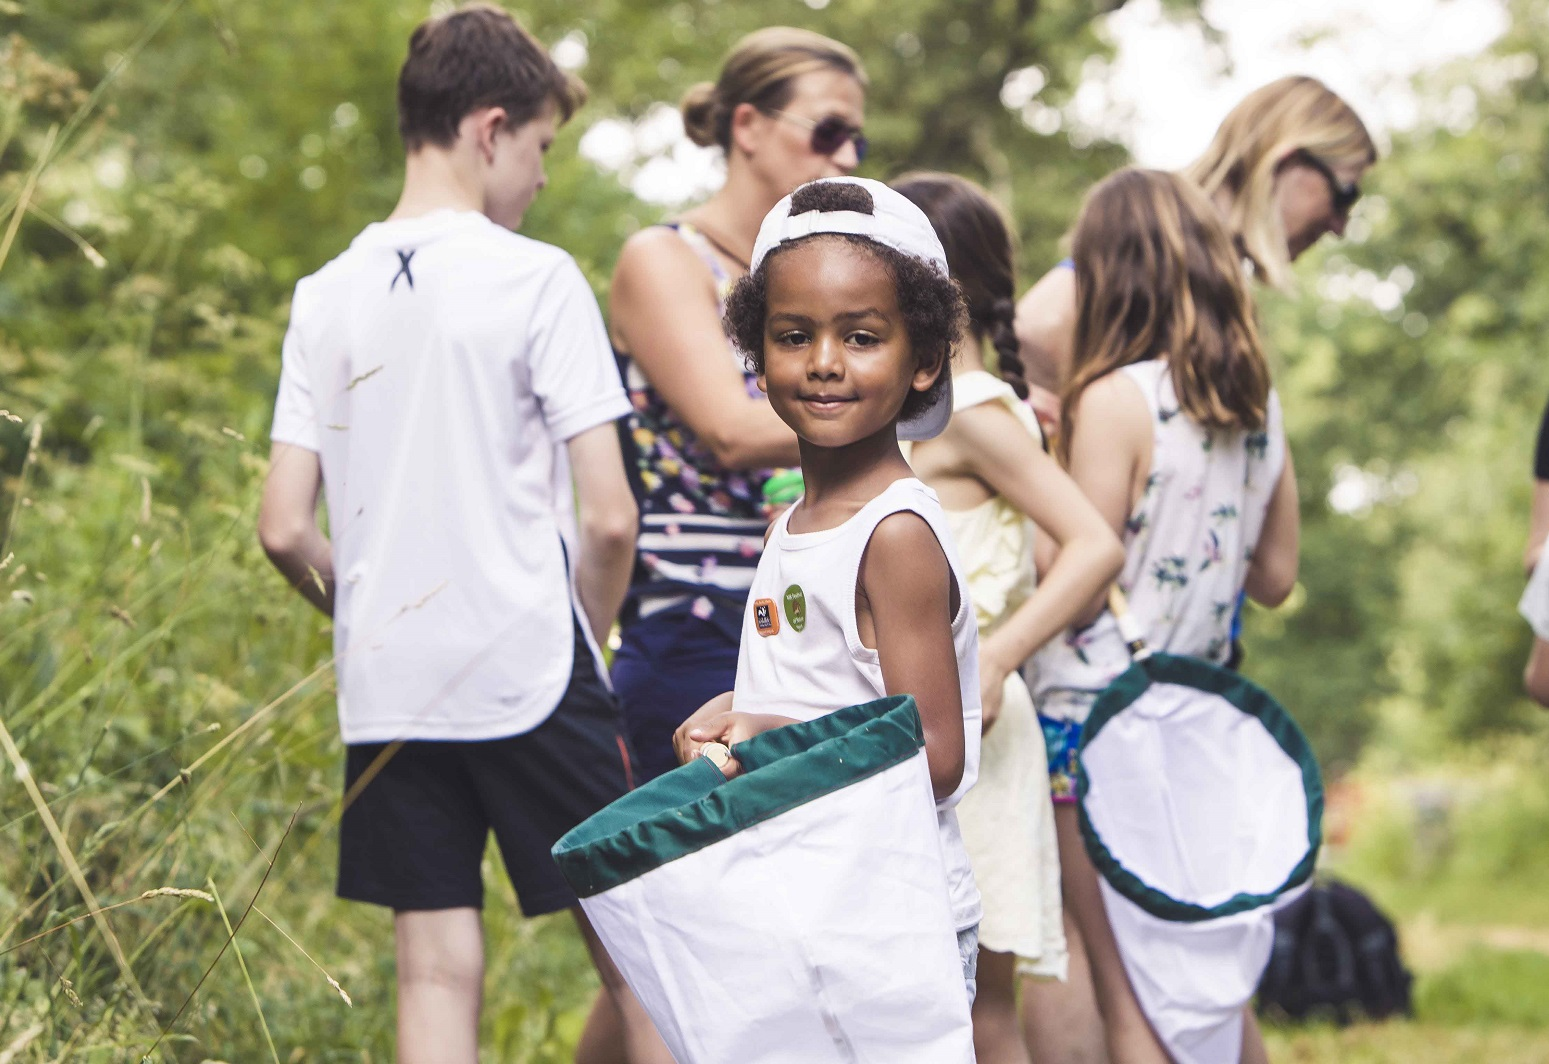 Nature-Day-MK-Festival-of-Nature-Bugs-Bug-Hunting-children,kids,child